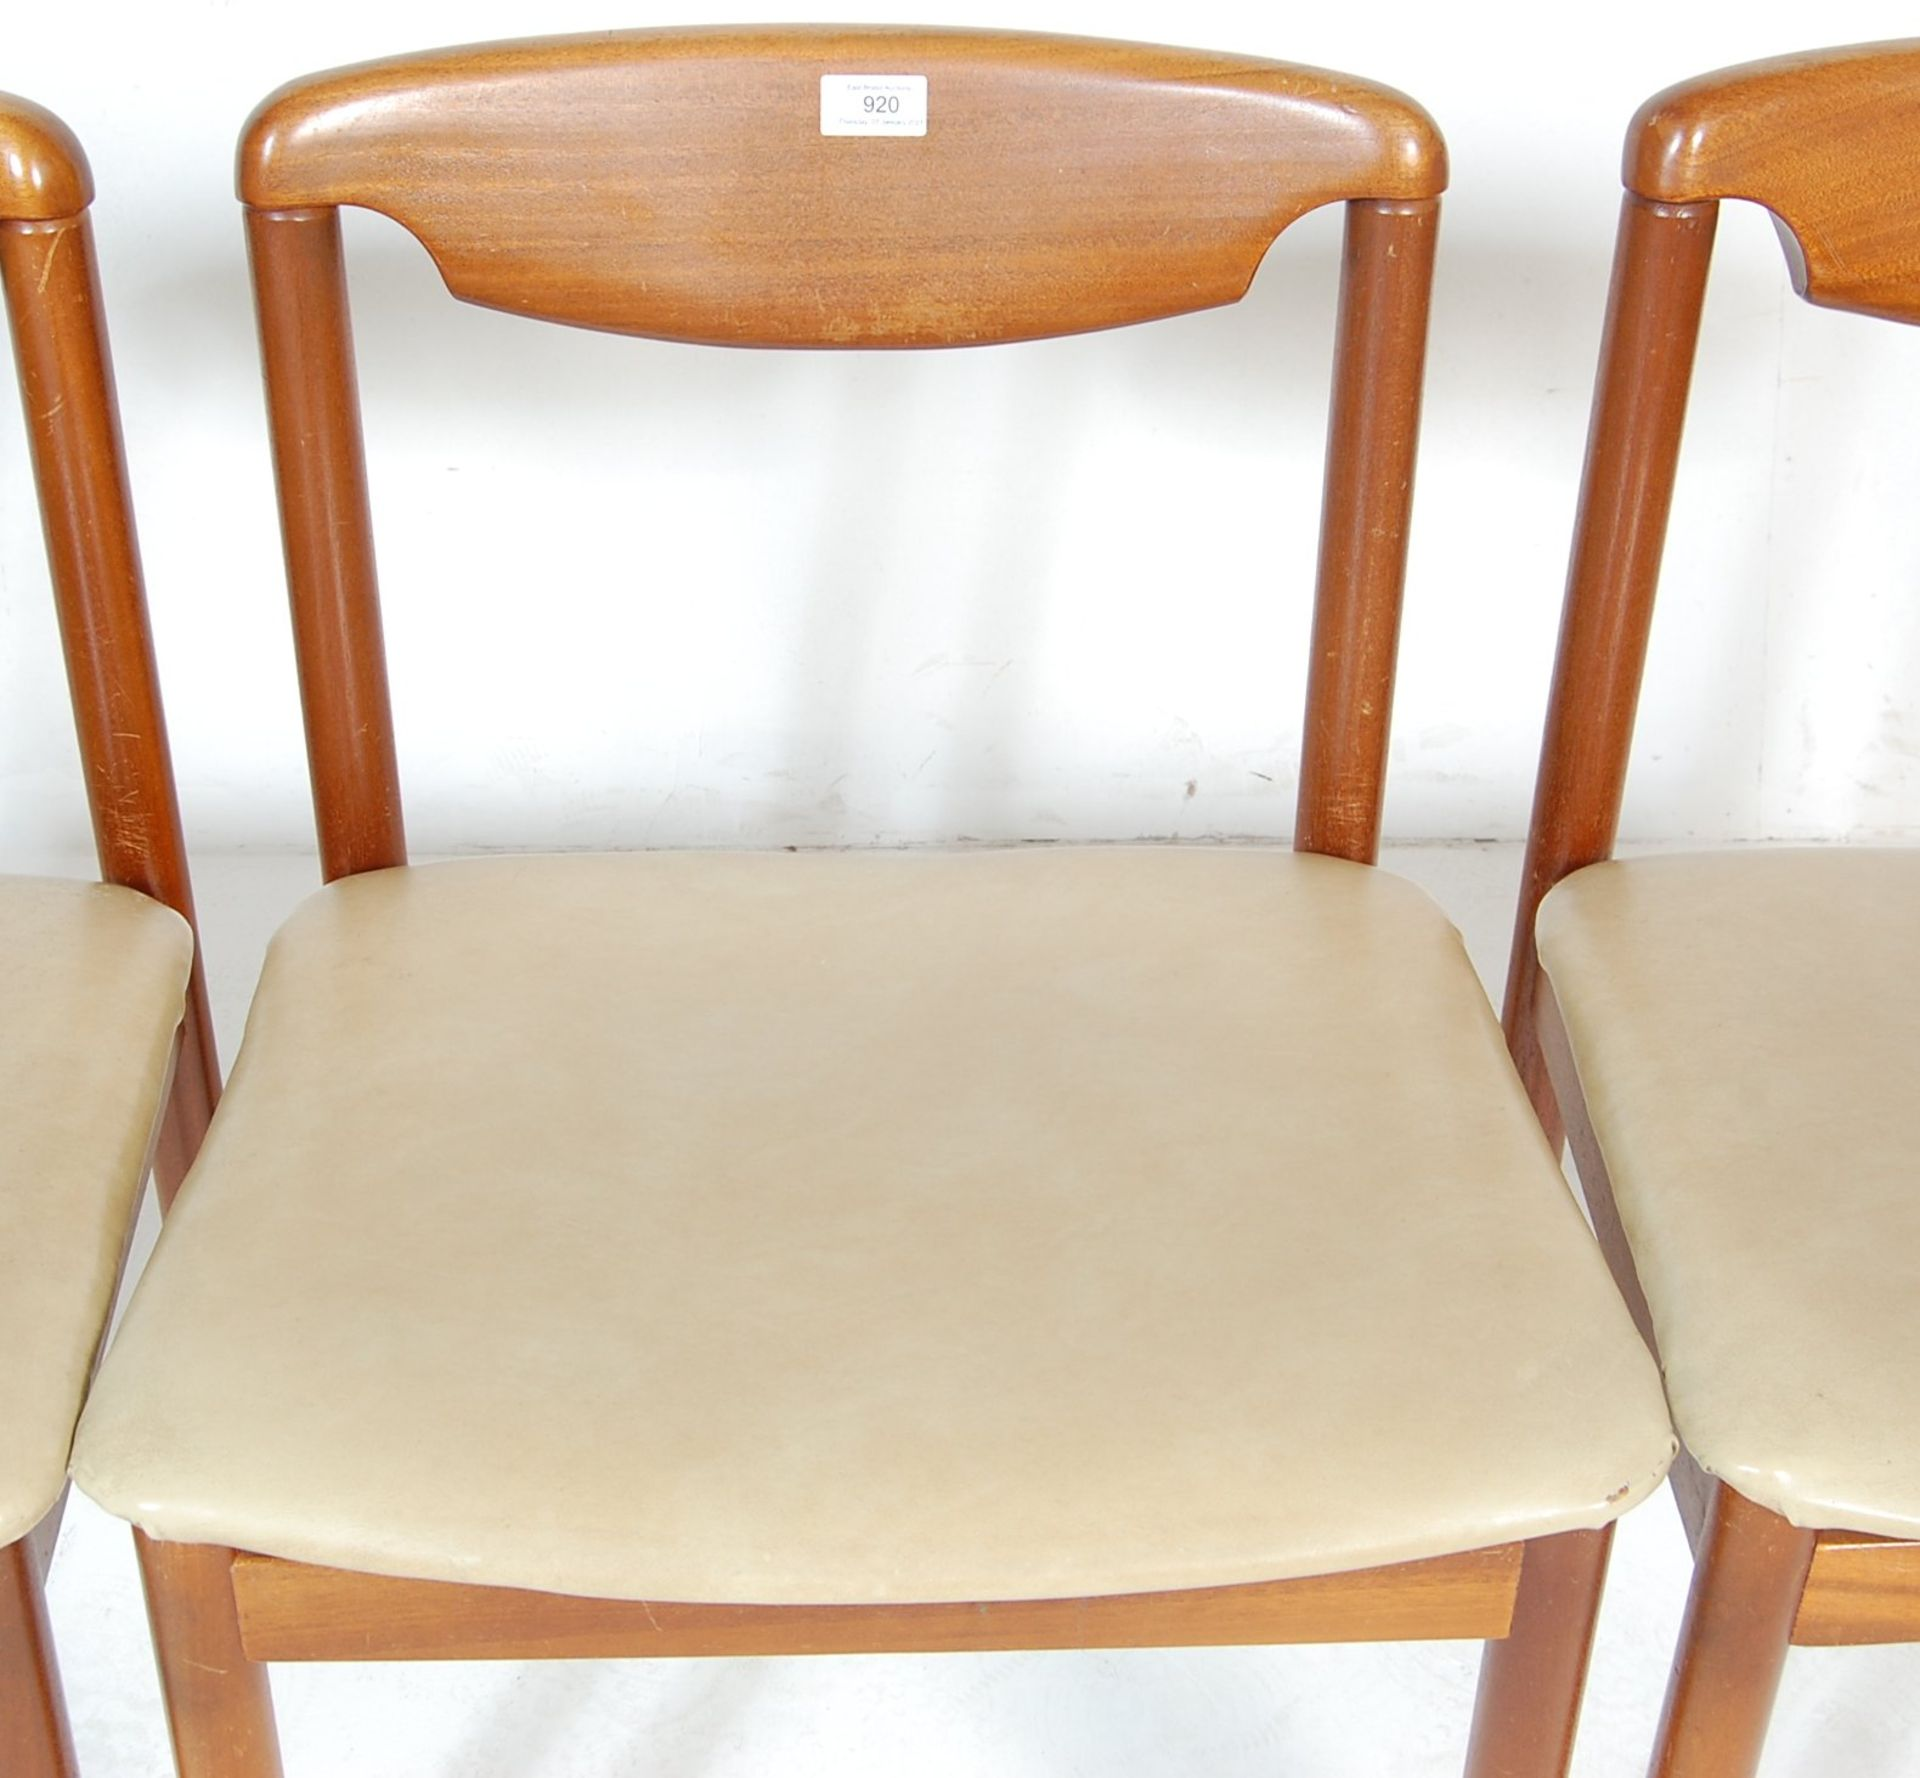 FOUR RETRO TEAK WOOD DINING CHAIRS WITH LEATHER SEATS - Image 3 of 5